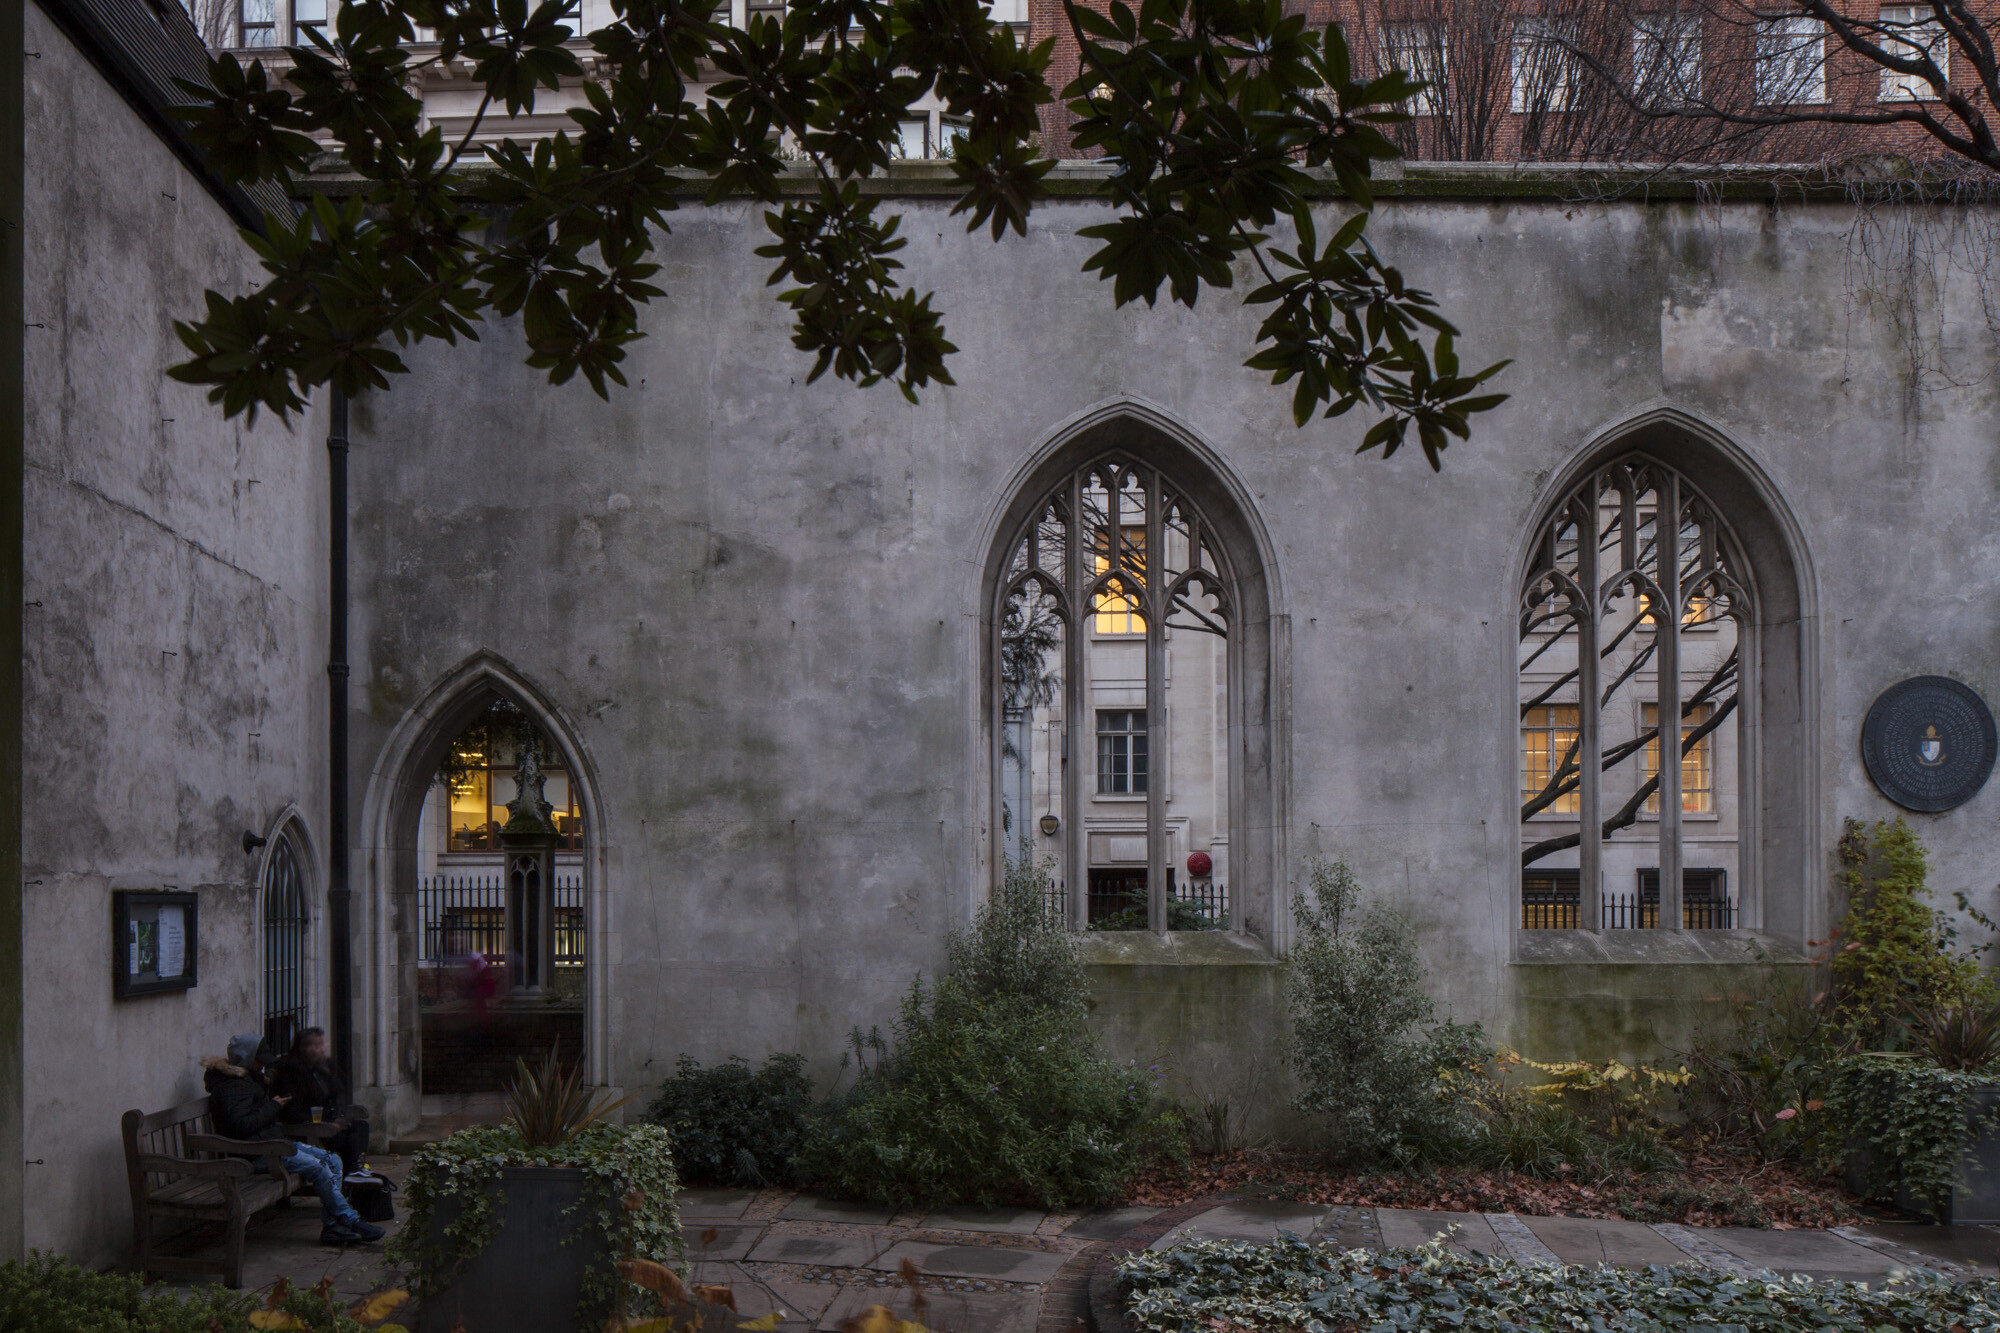 Masonry walls and planted gardens of  St Dunstan's church